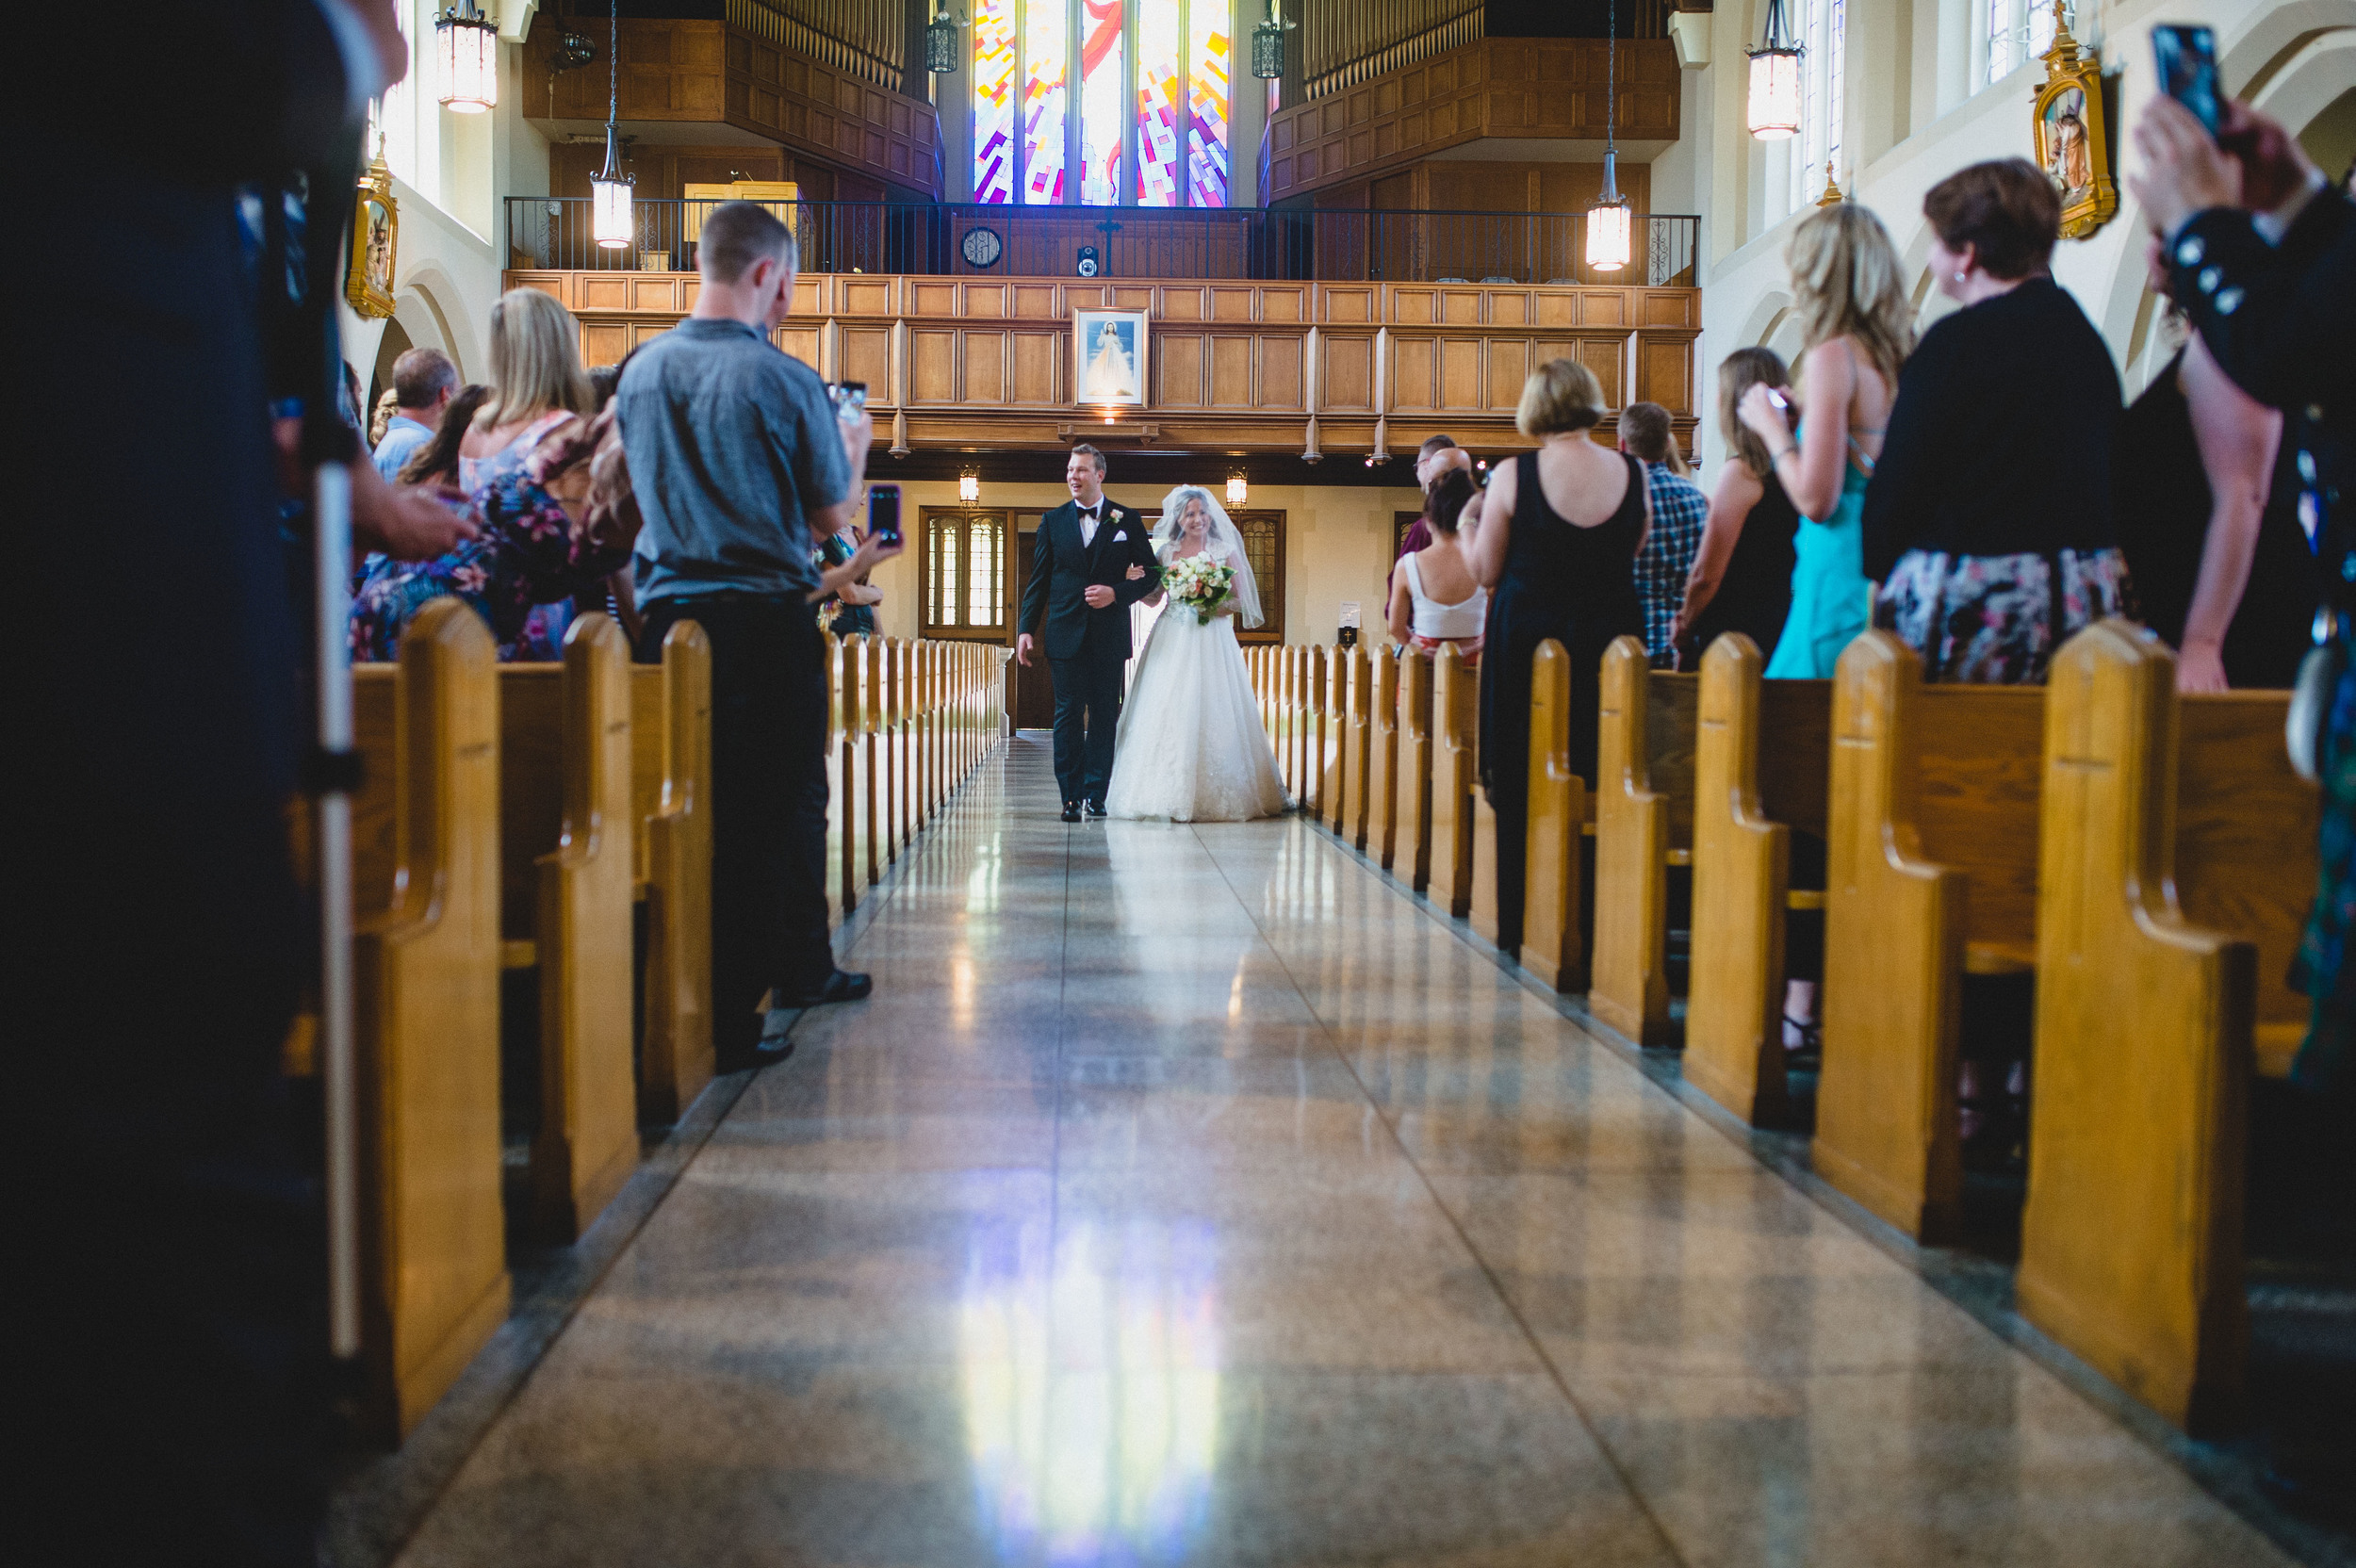 Vancouver St Augustine 's Church wedding photographer edward lai photography-34.jpg